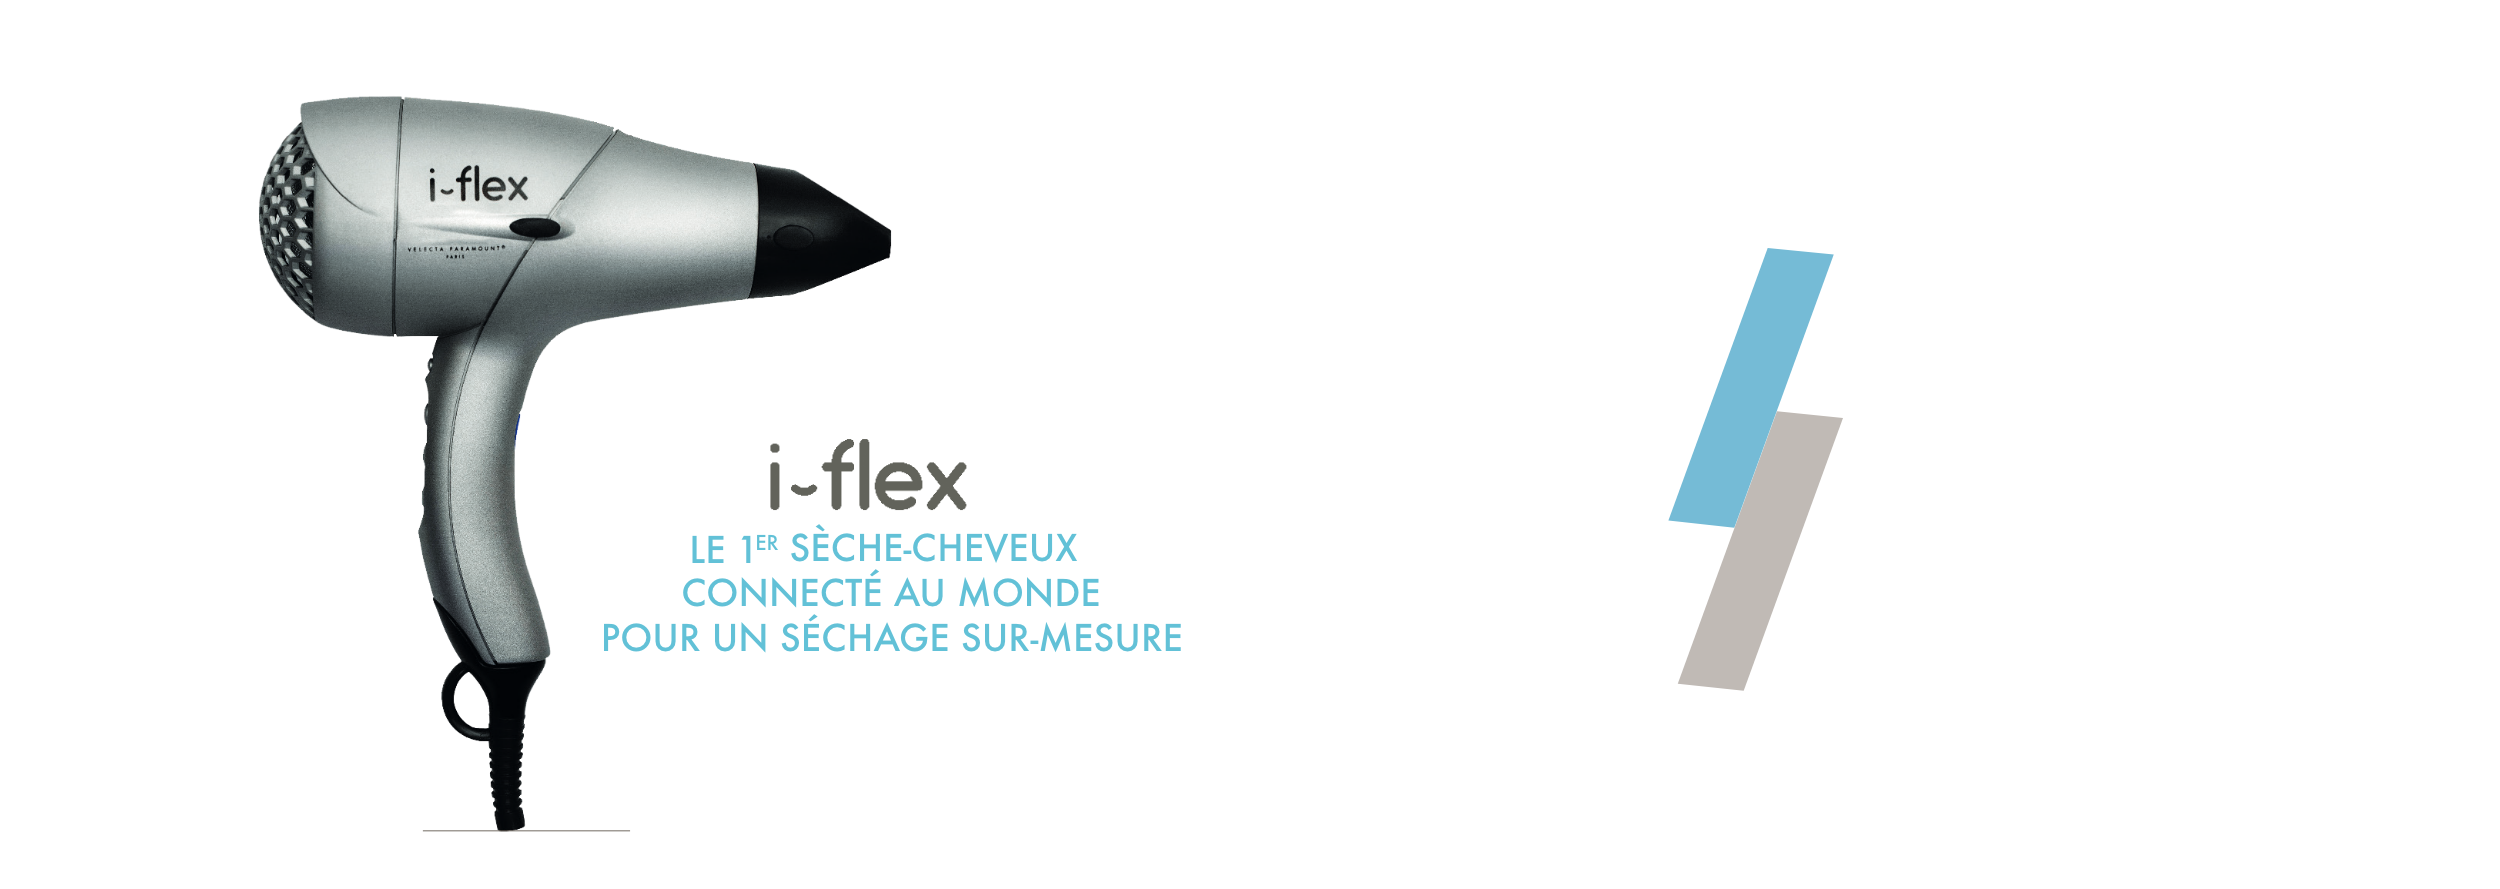 image-iflex2-velecta-paramount-agence-conseil-en-communication-Letb-synergie